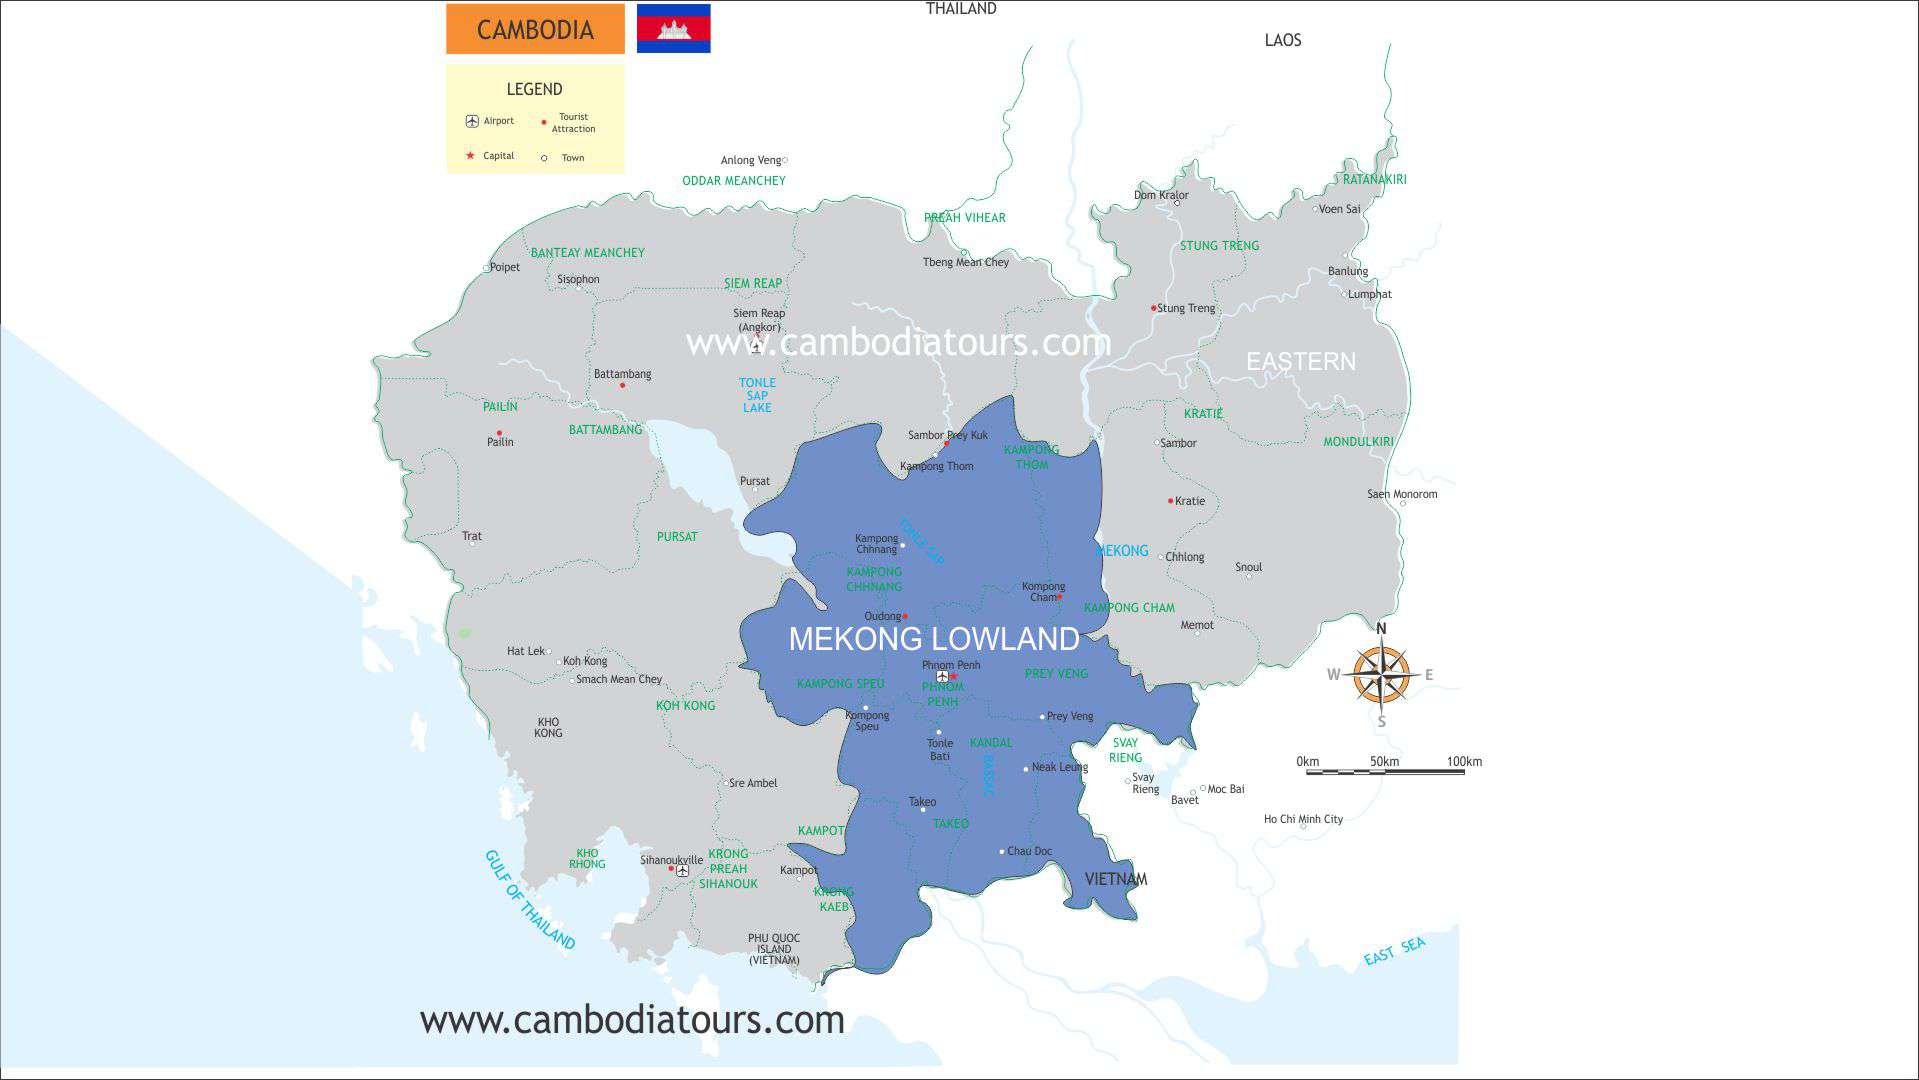 Mekong Lowland Cambodia Travel Map a6065